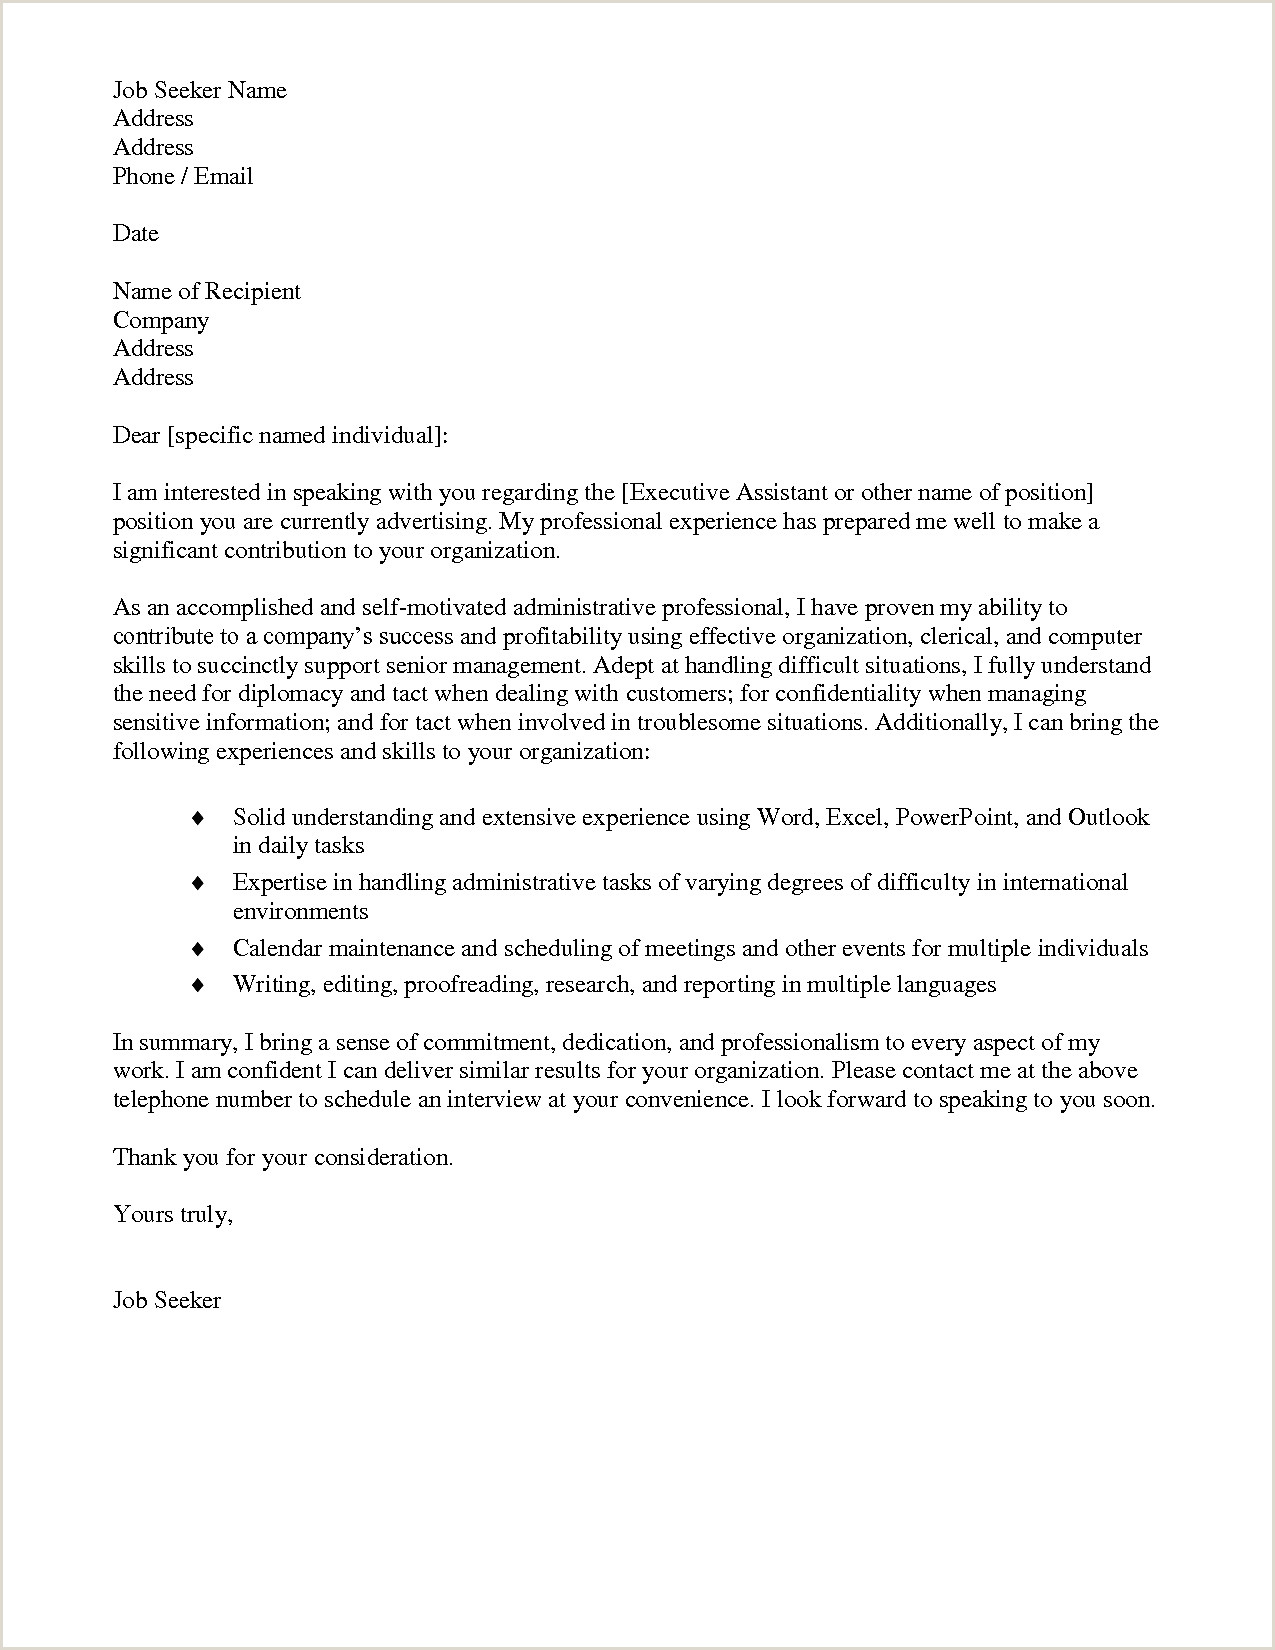 Executive assistant Cover Letter 2017 12 13 Personal assistant Cover Letter Samples